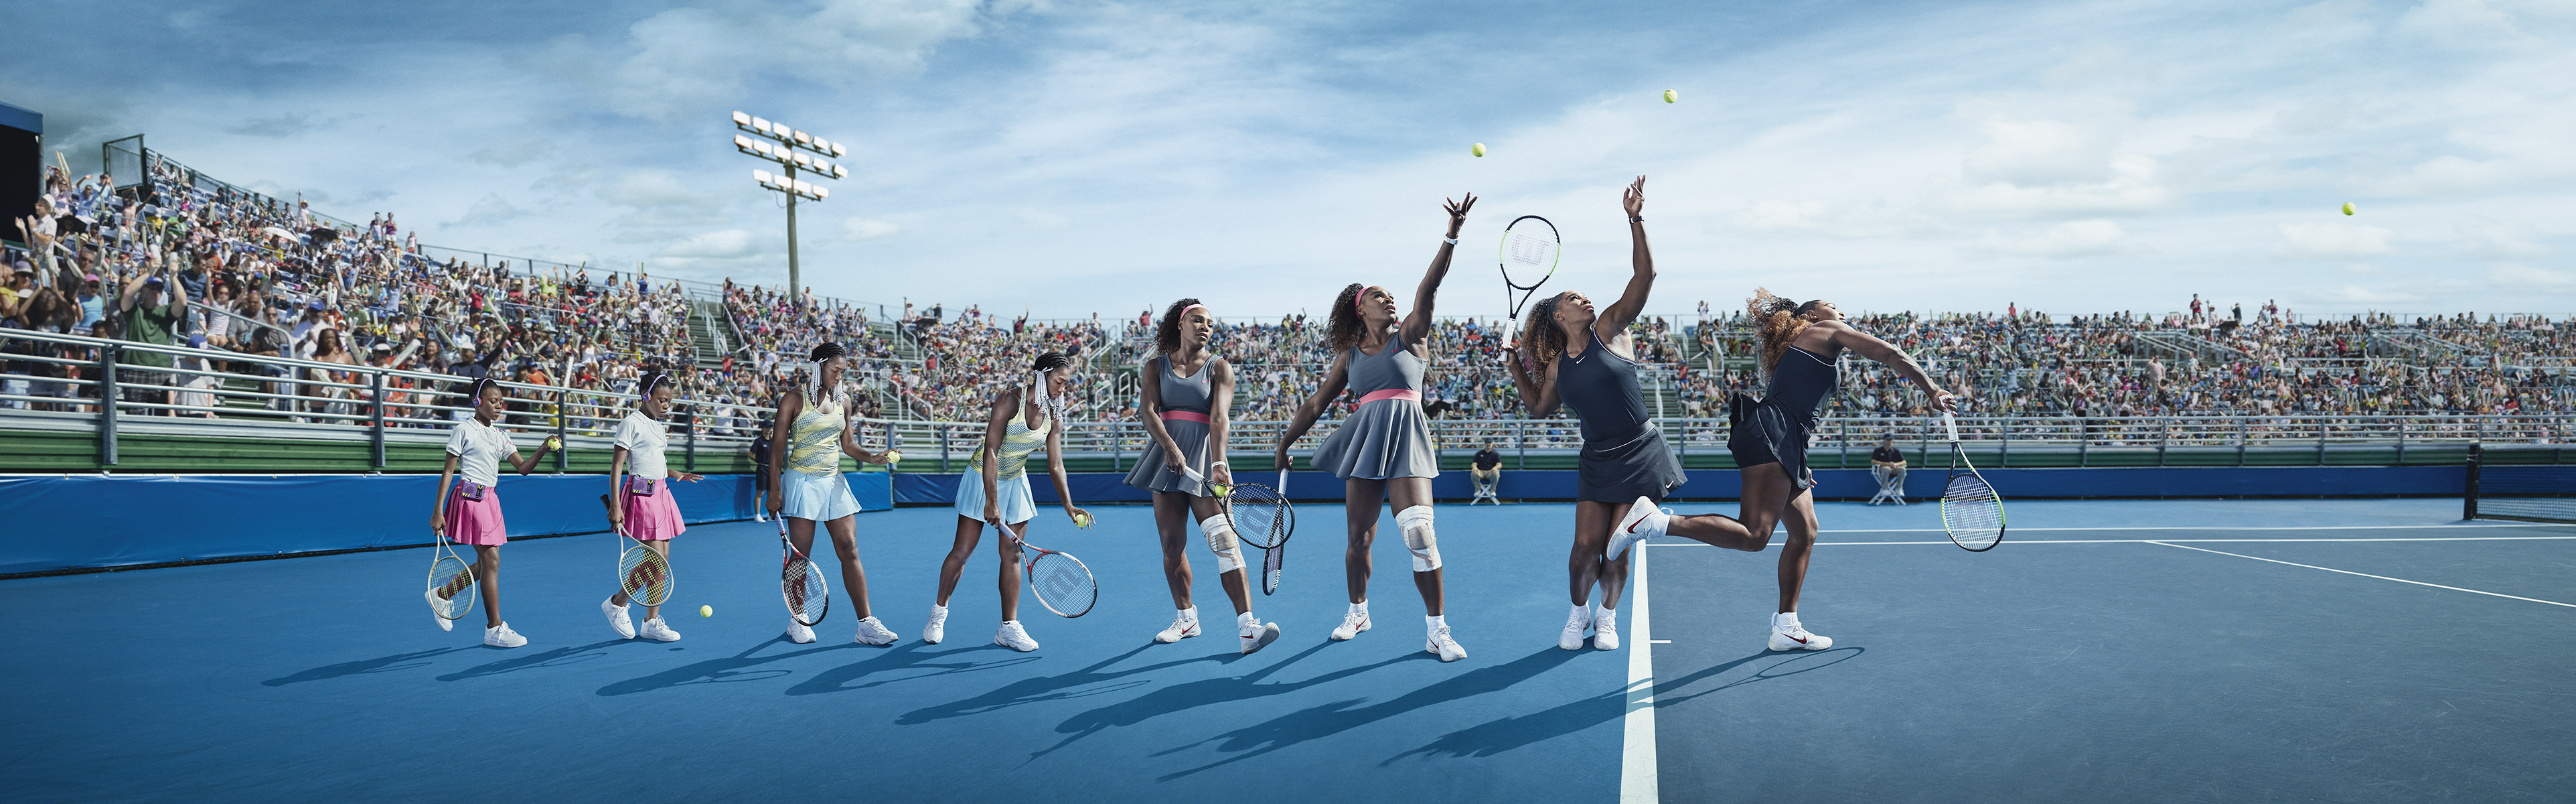 Serena Williams, Axa Insurances, Publicis Paris